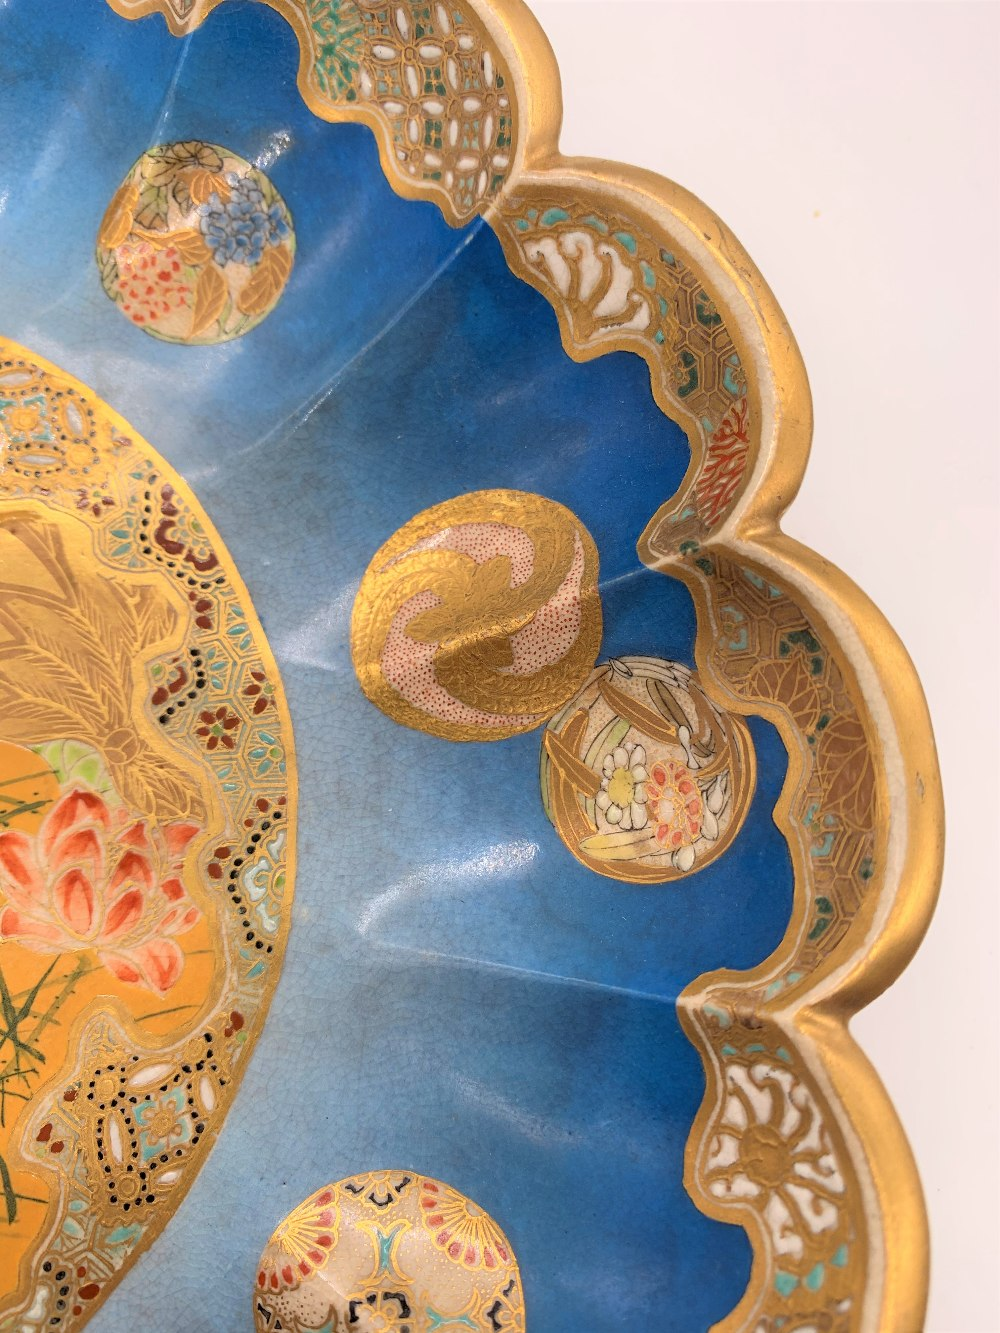 TAIZAN YOHEI; a good Japanese Meiji period Satsuma dish with scallop moulded border and central - Image 3 of 7